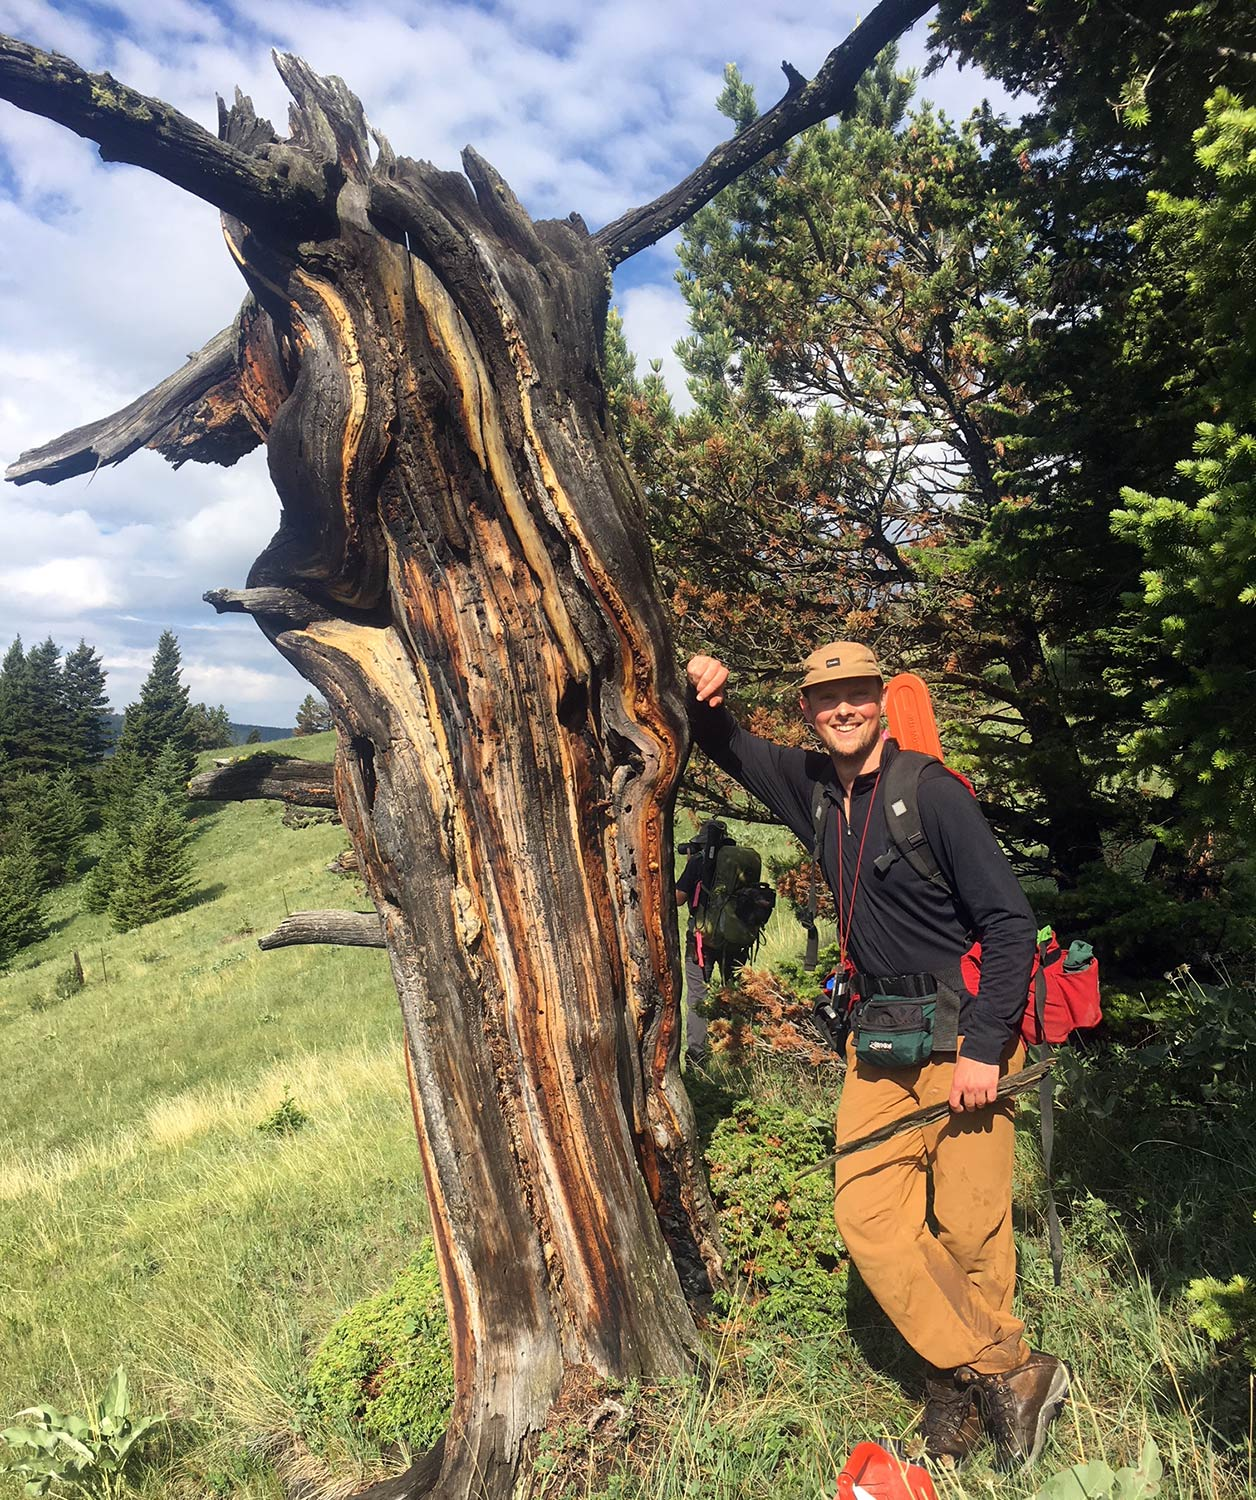 Owen Fitzpatrick of the Landscapes in Motion Fire Regime stands next to a fire-scarred tree in the southern Rockies of Alberta.